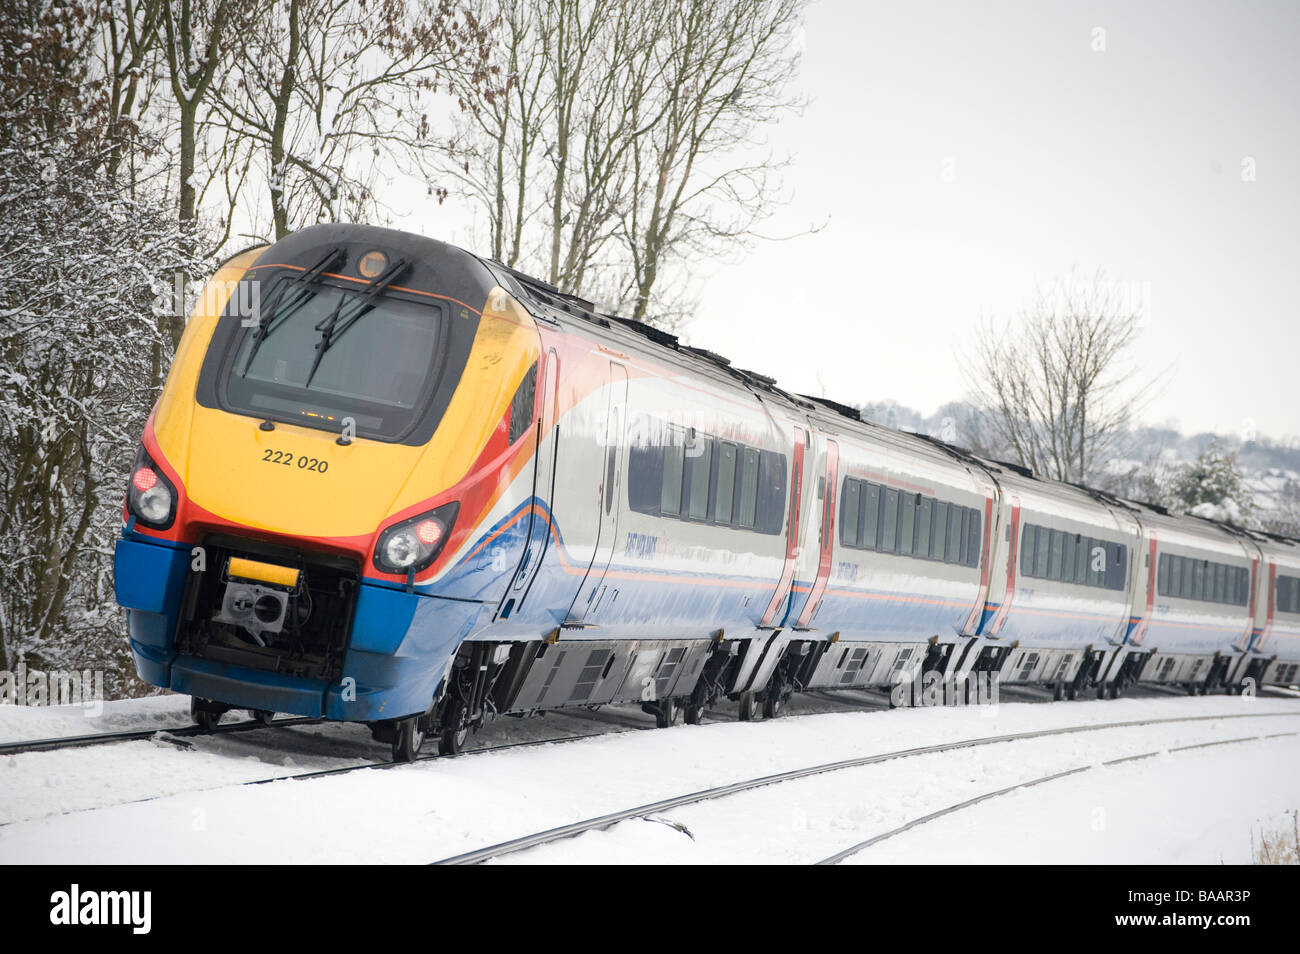 Class 222 Meridian train in East Midlands Trains livery travelling through snow in the Leicestershire countryside - Stock Image